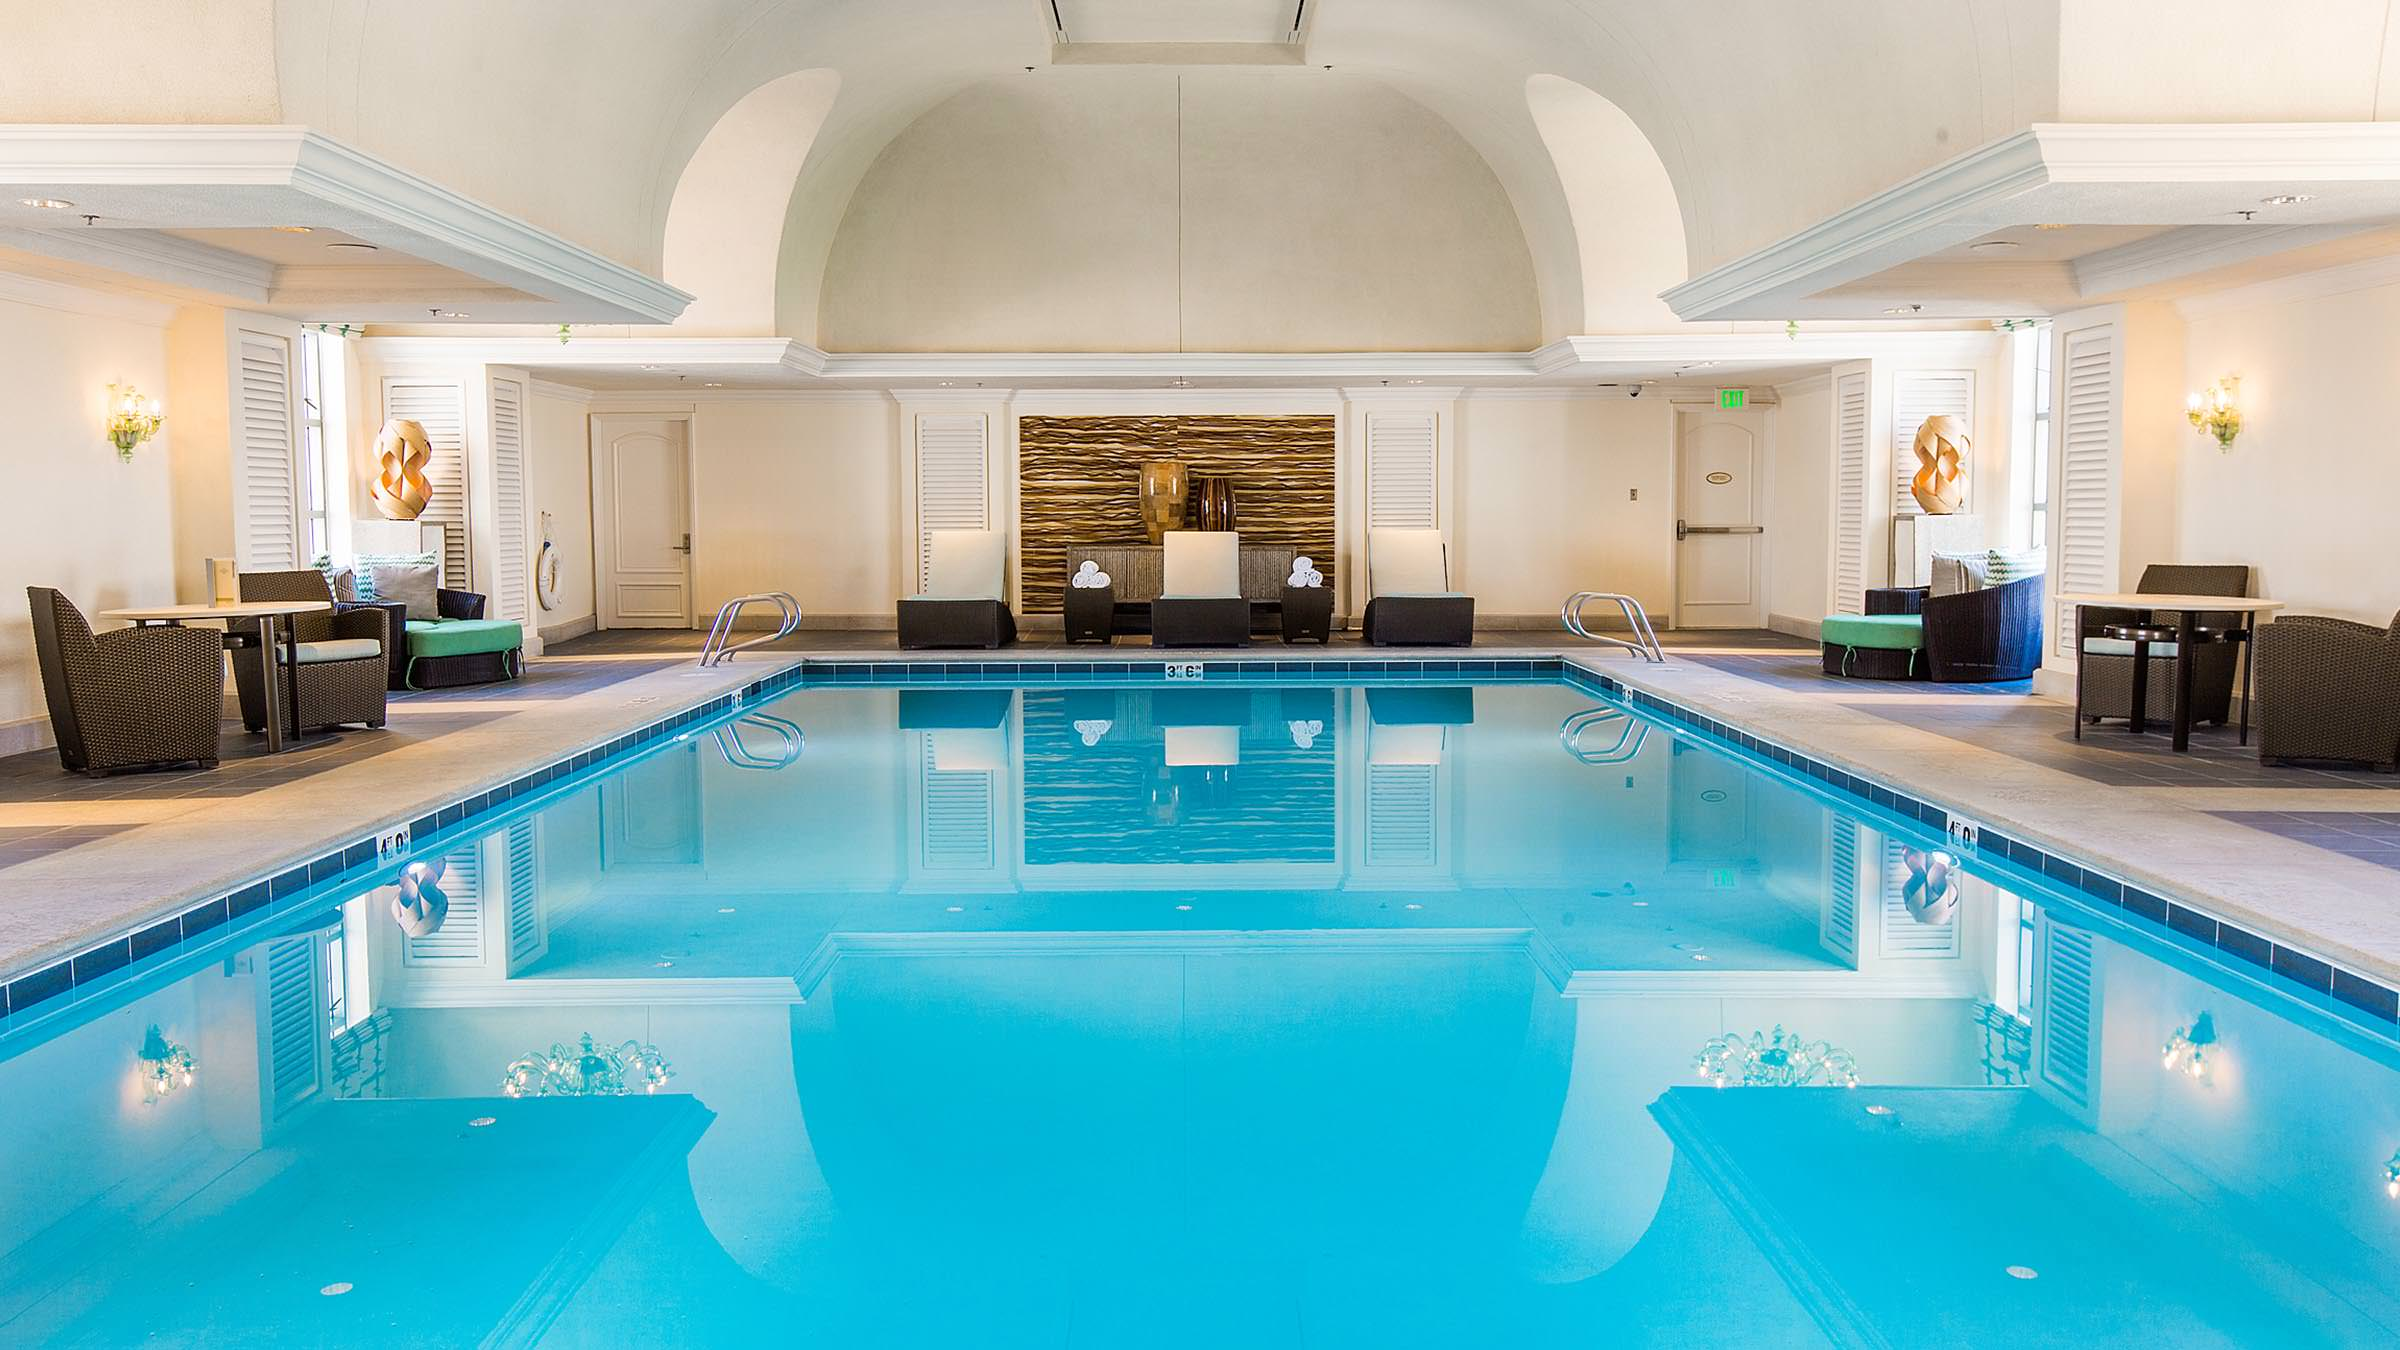 The Grand Spa's Indoor Pool featuring arched ceilings and Italian chandeliers.